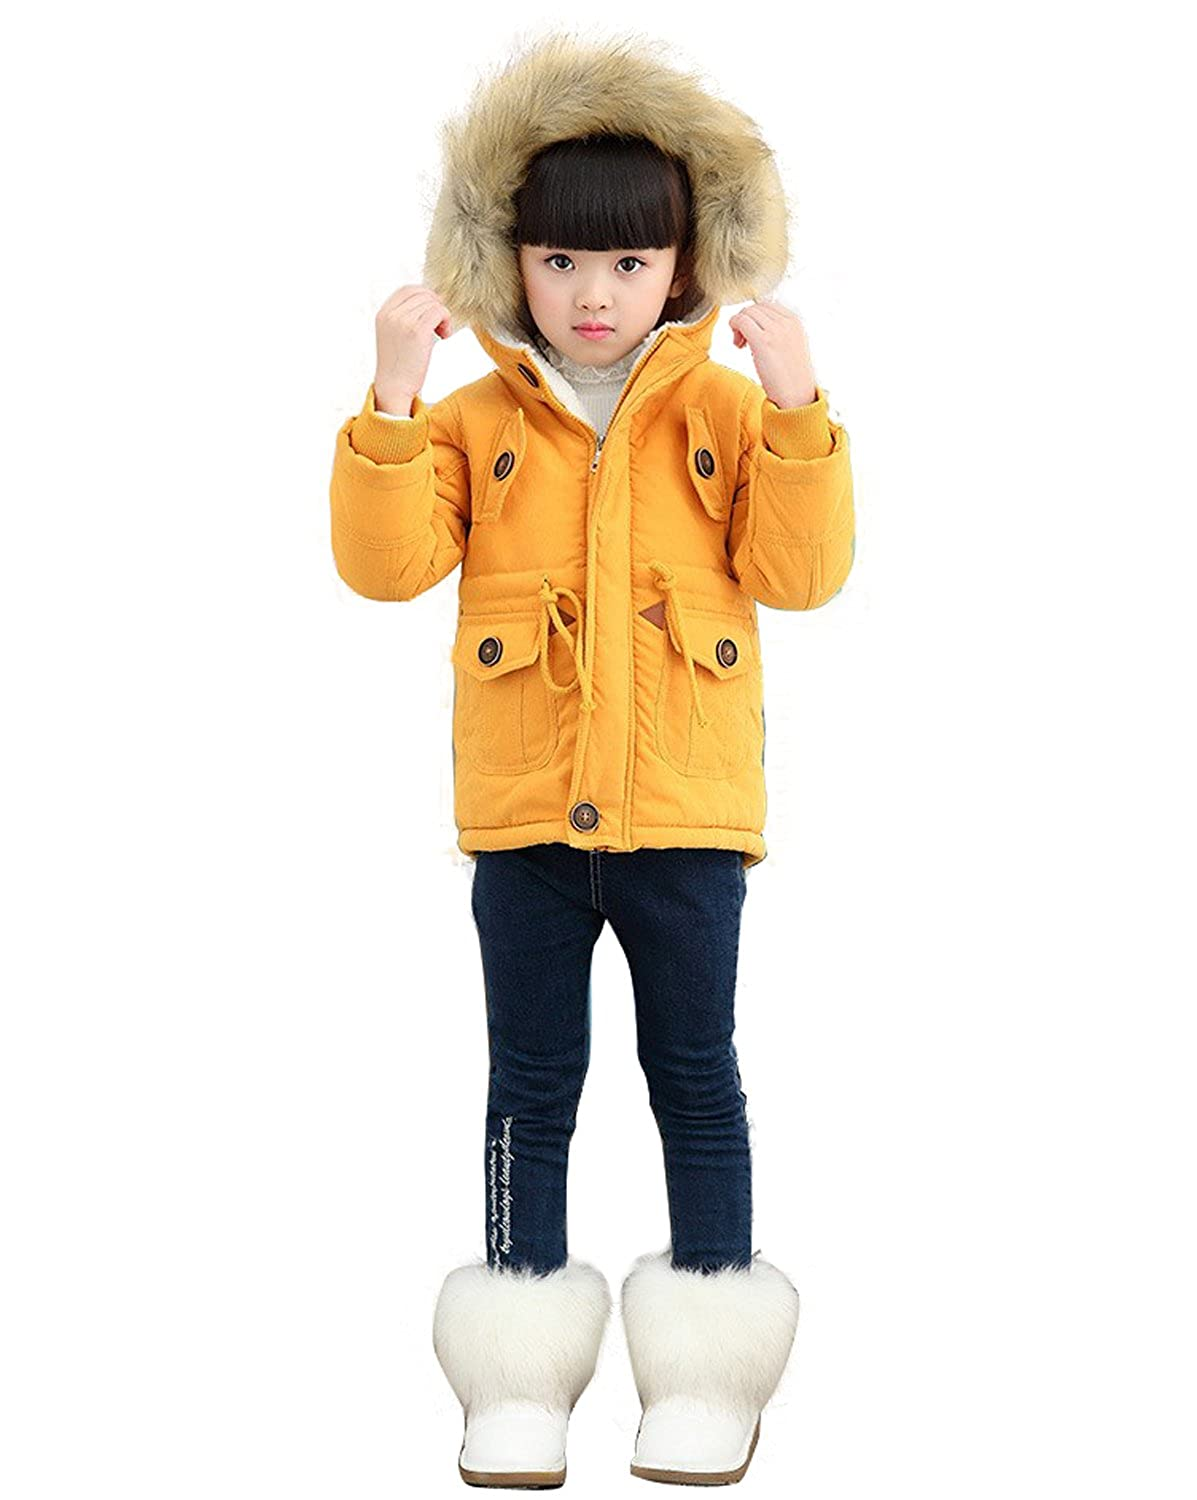 Gaorui Unisex Boys Girls Winter Hooded Coat Kids USA Flag Thick Cotton Outwear Jacket